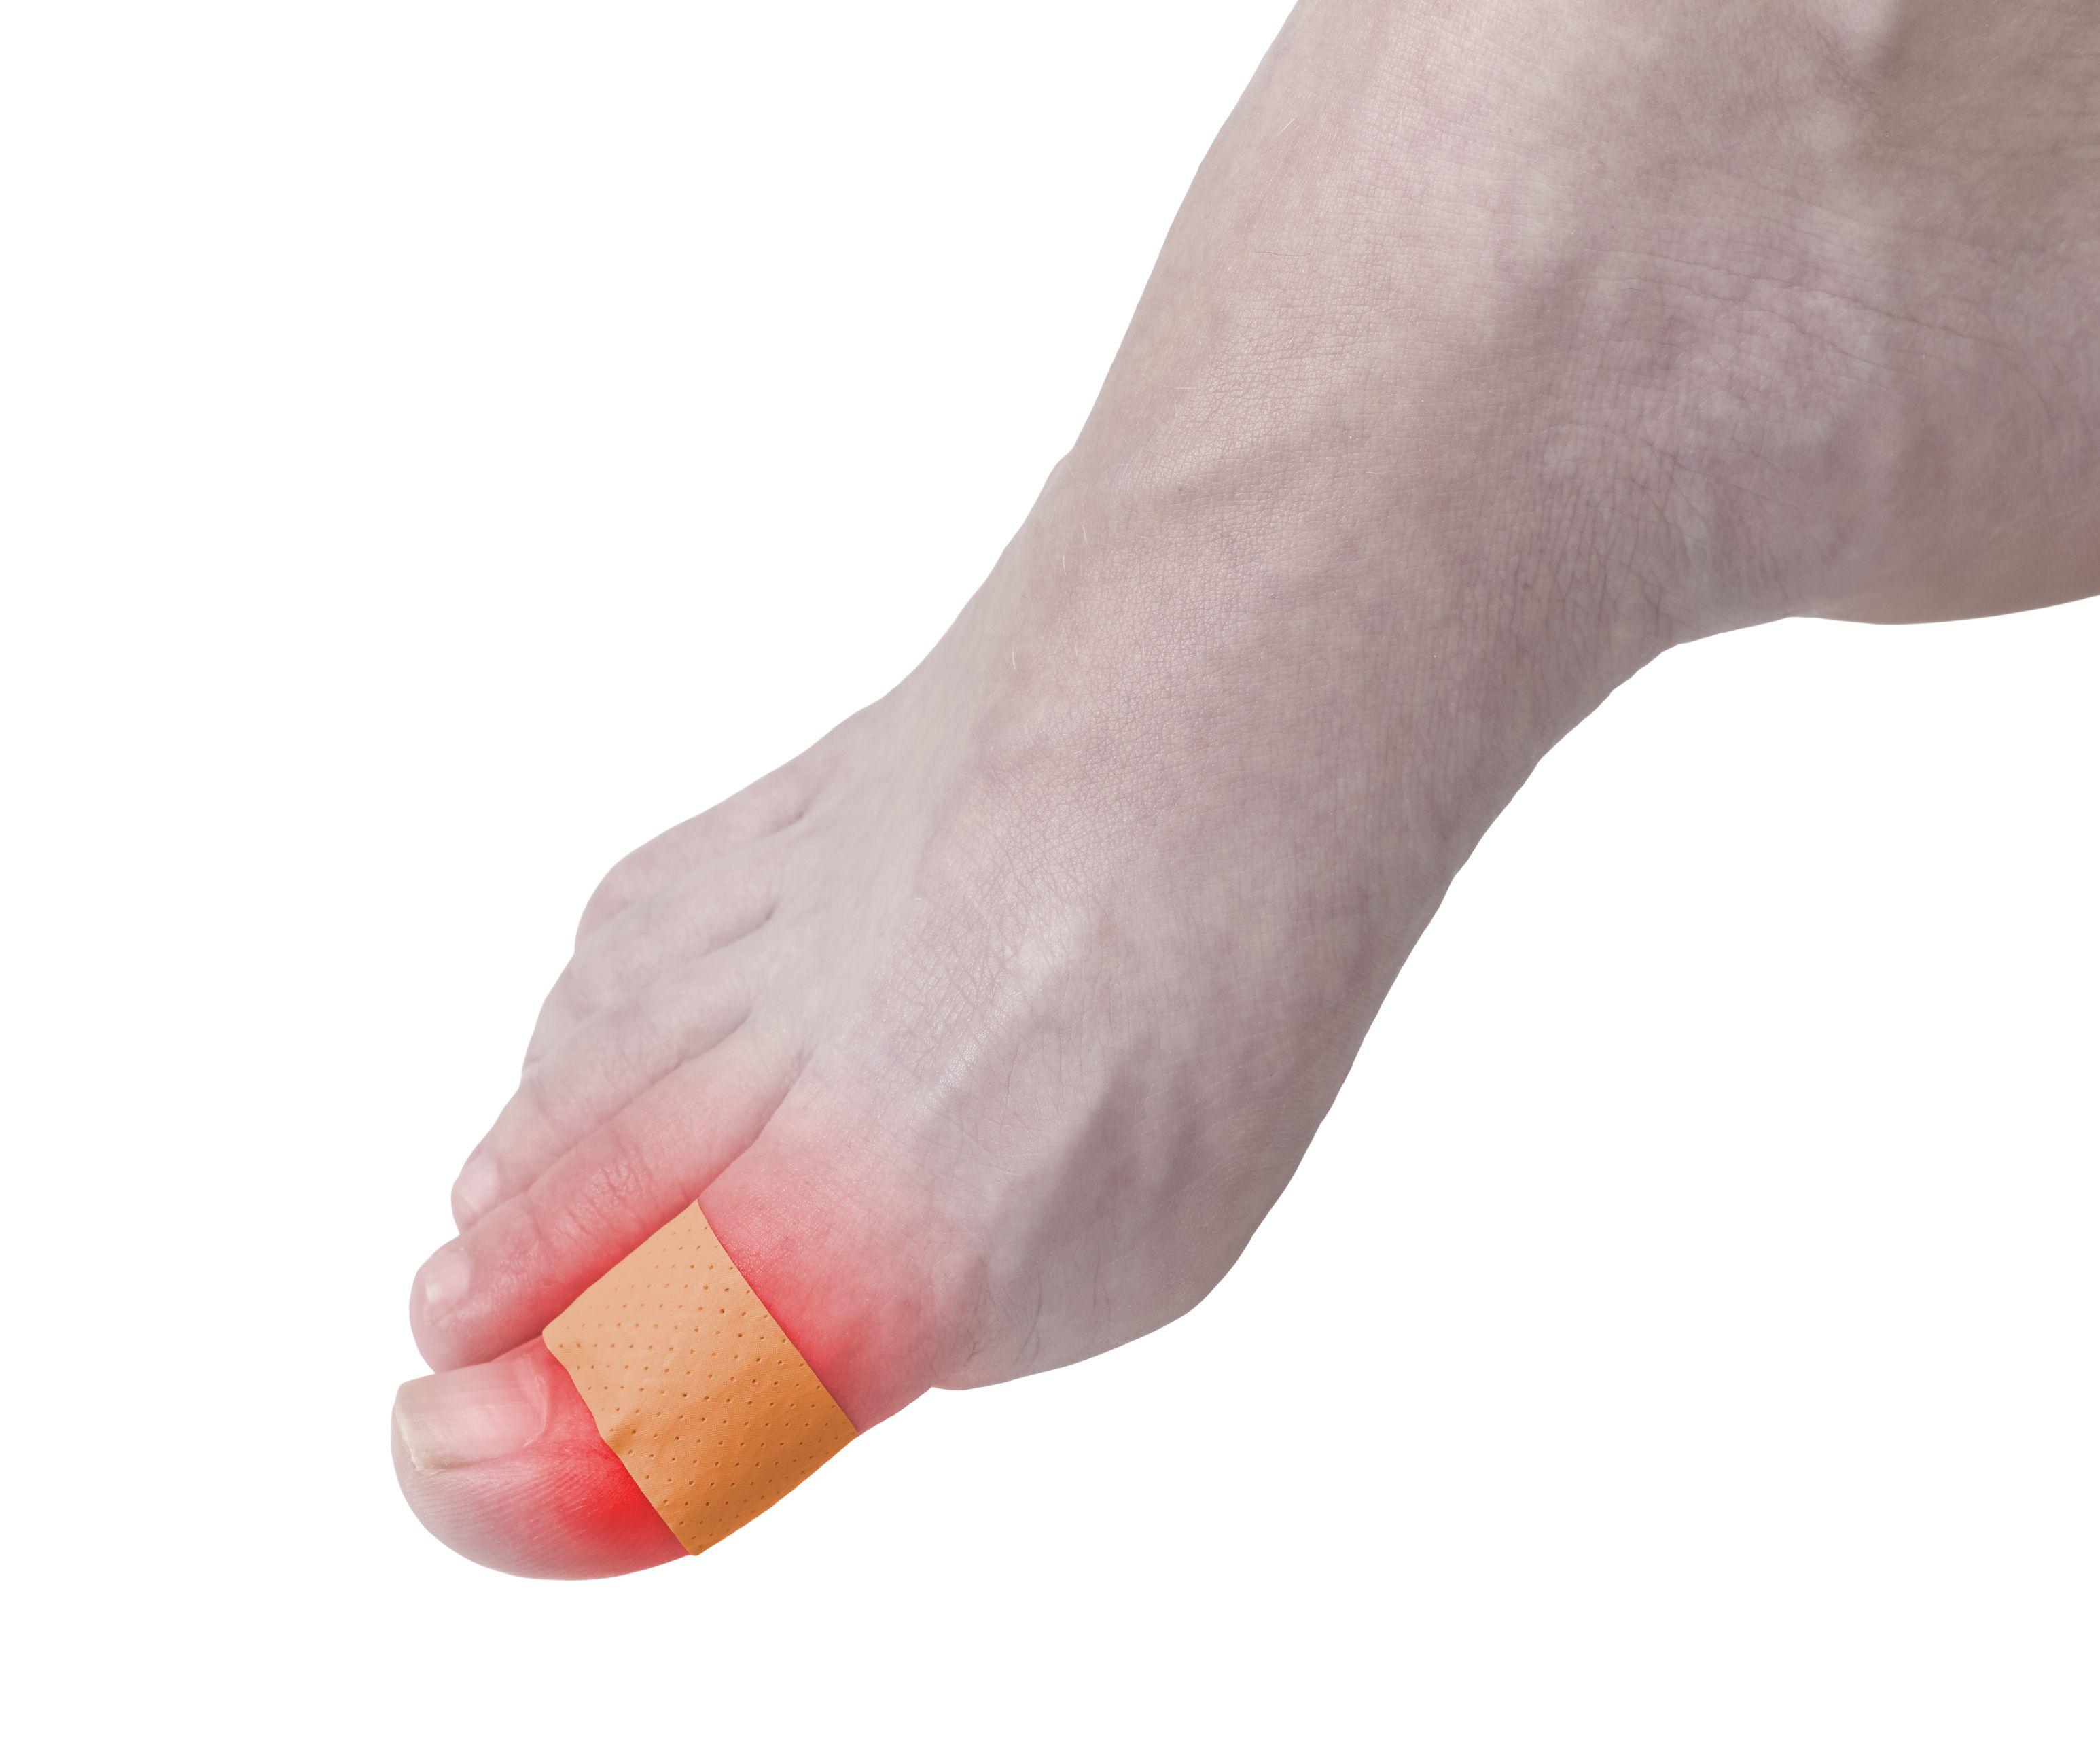 http://www.dreamstime.com/royalty-free-stock-photos-adhesive-healing-plaster-foot-finger-concept-photo-color-enhanced-skin-read-spot-indicating-location-wound-image35209108